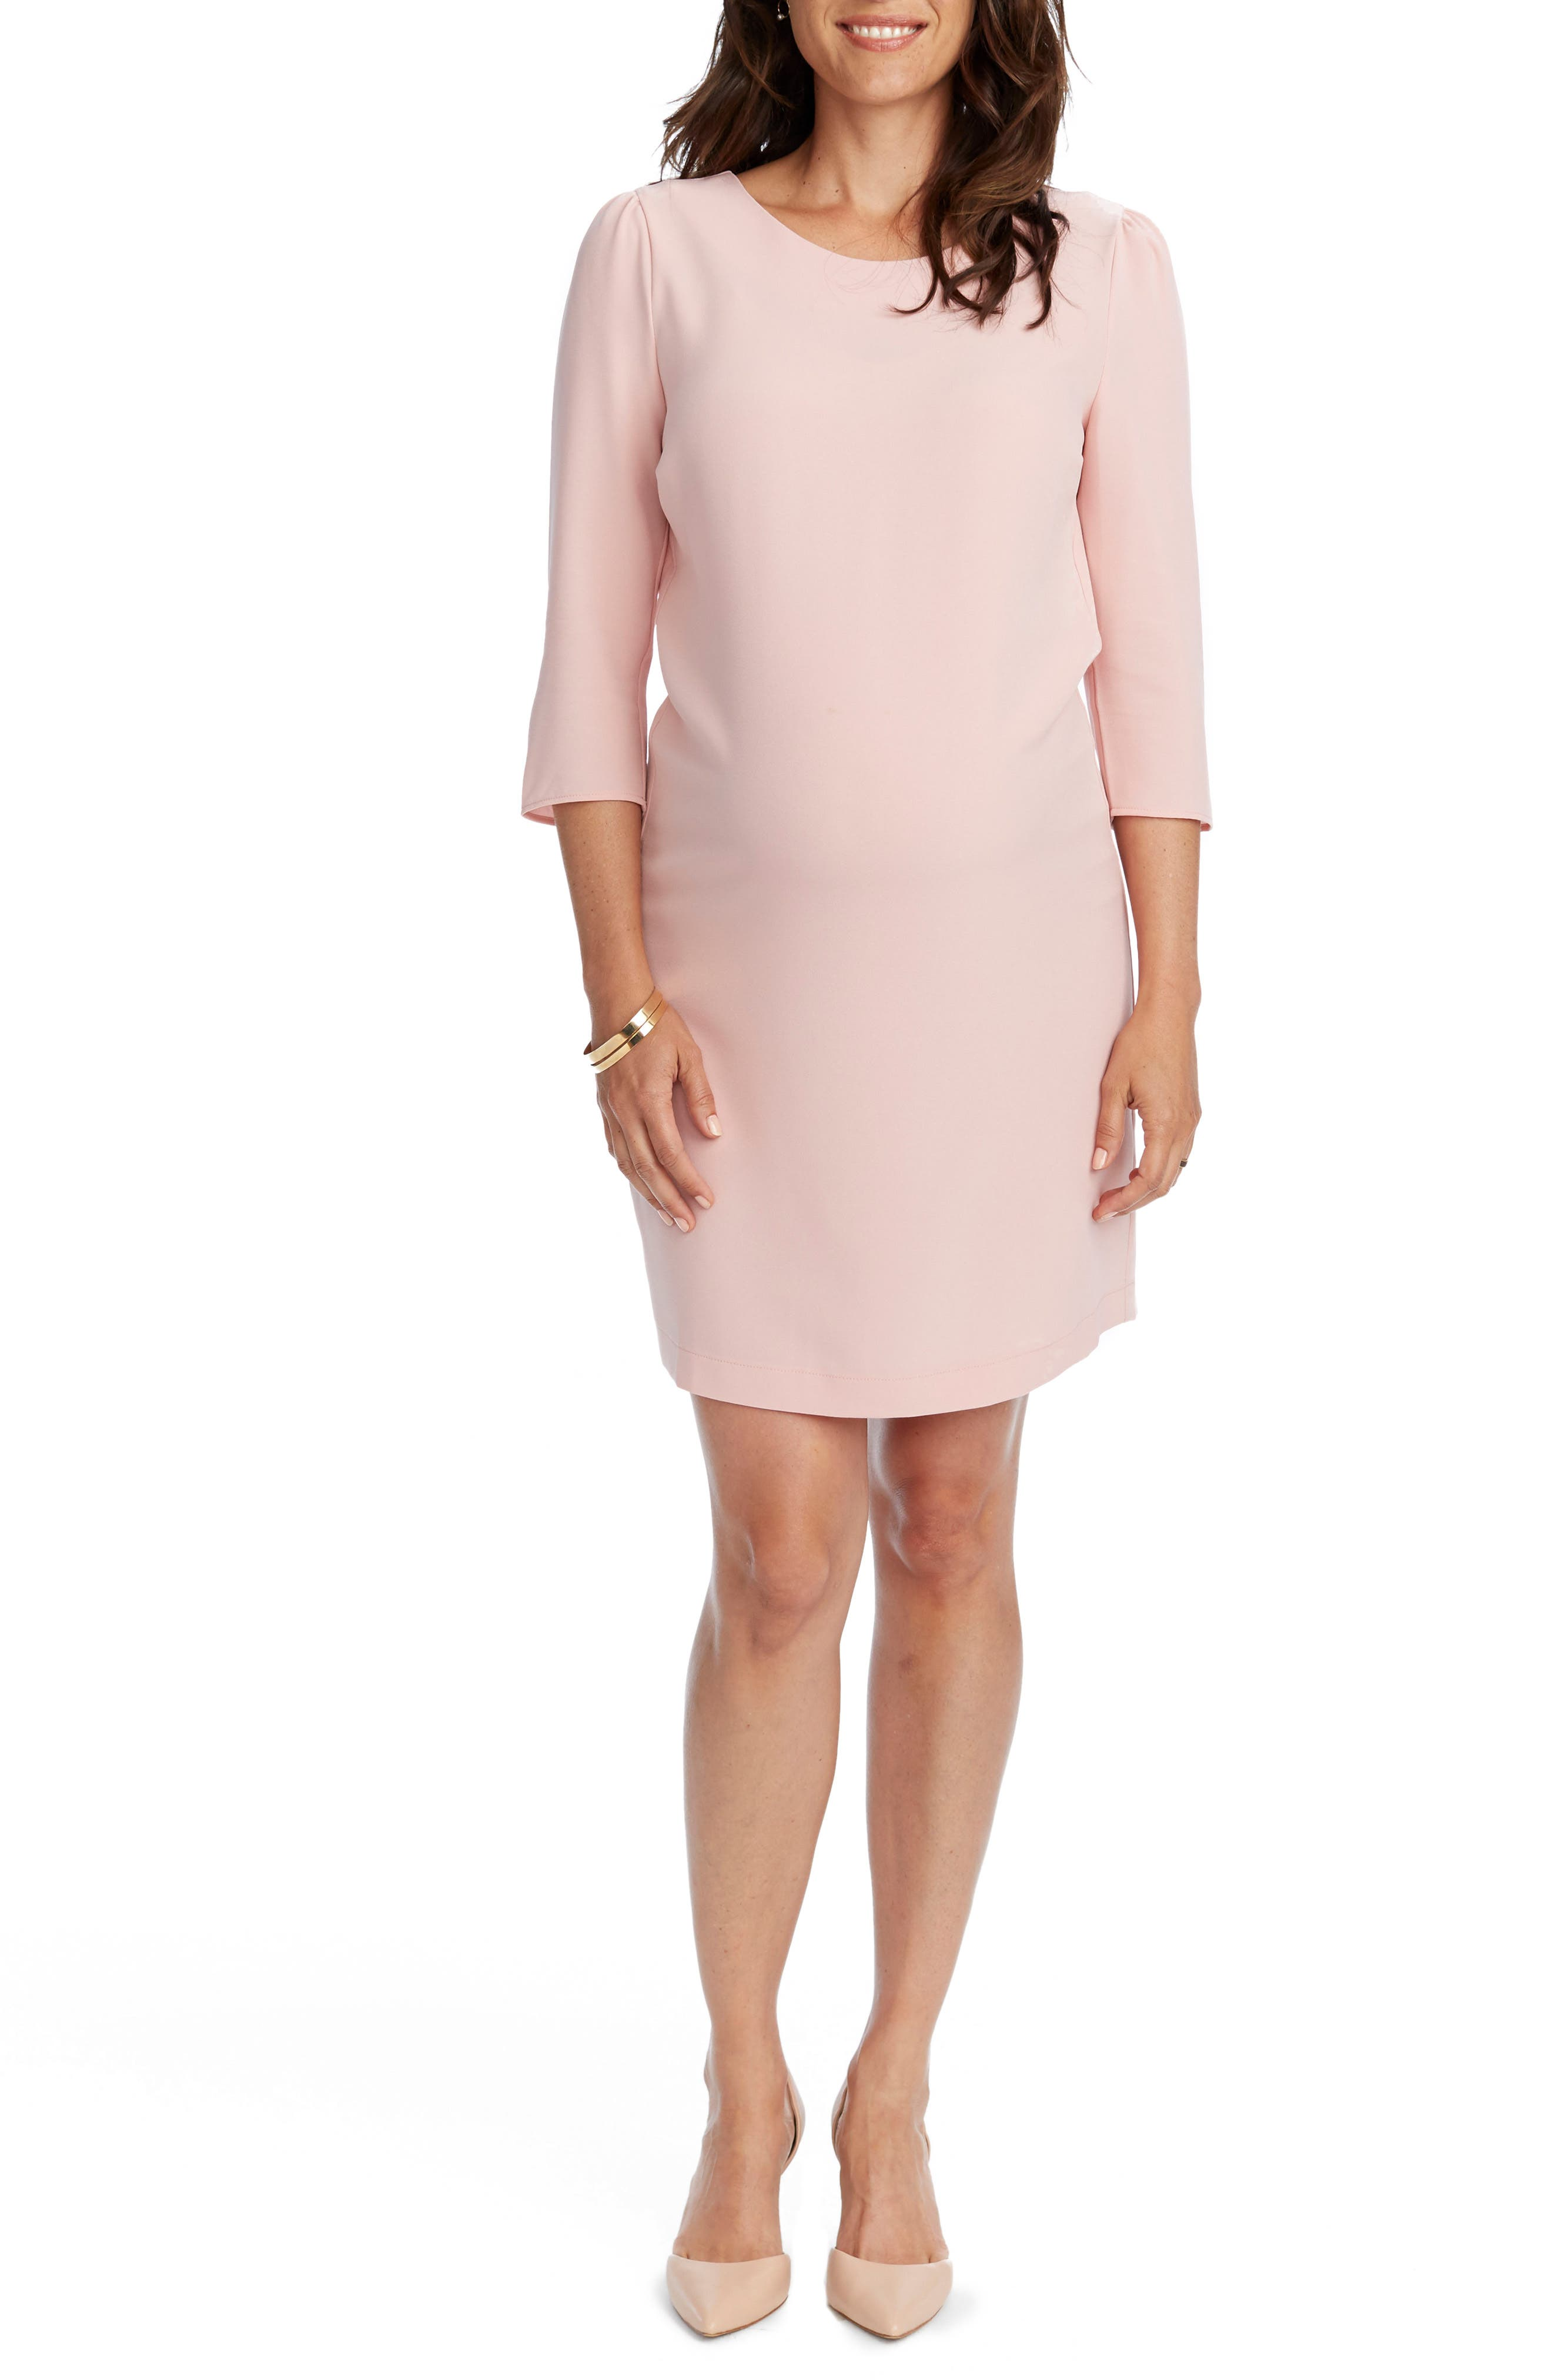 Cammie Maternity Shift Dress,                             Alternate thumbnail 3, color,                             680